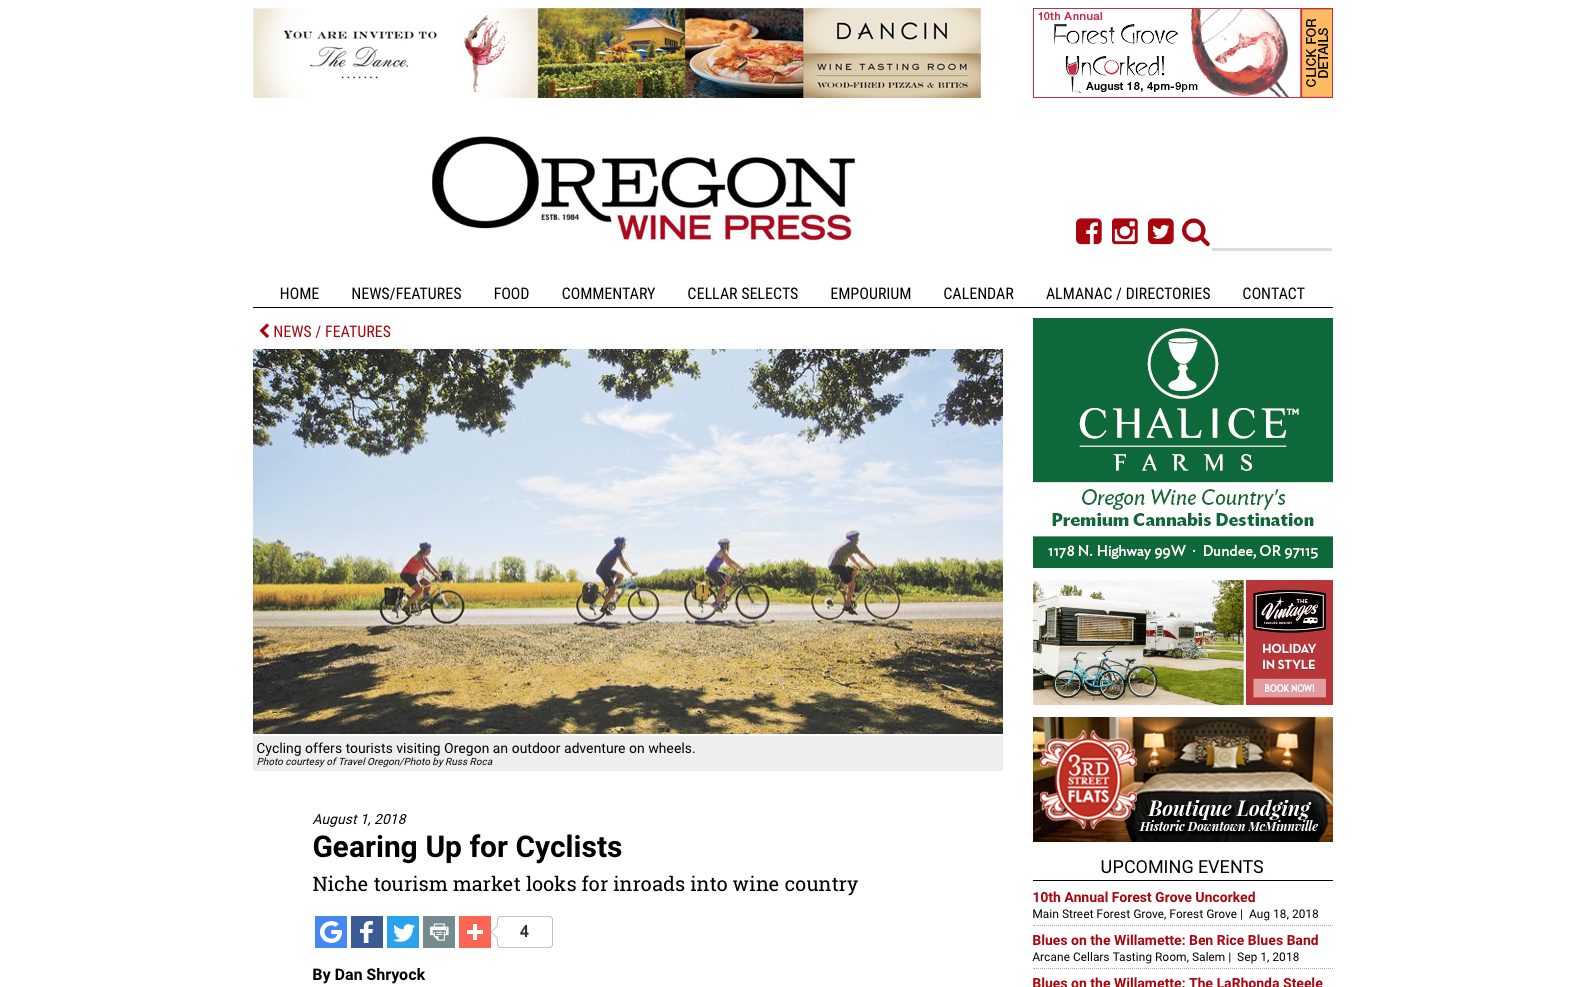 Oregon Wine Press, Gearing Up For Cyclists